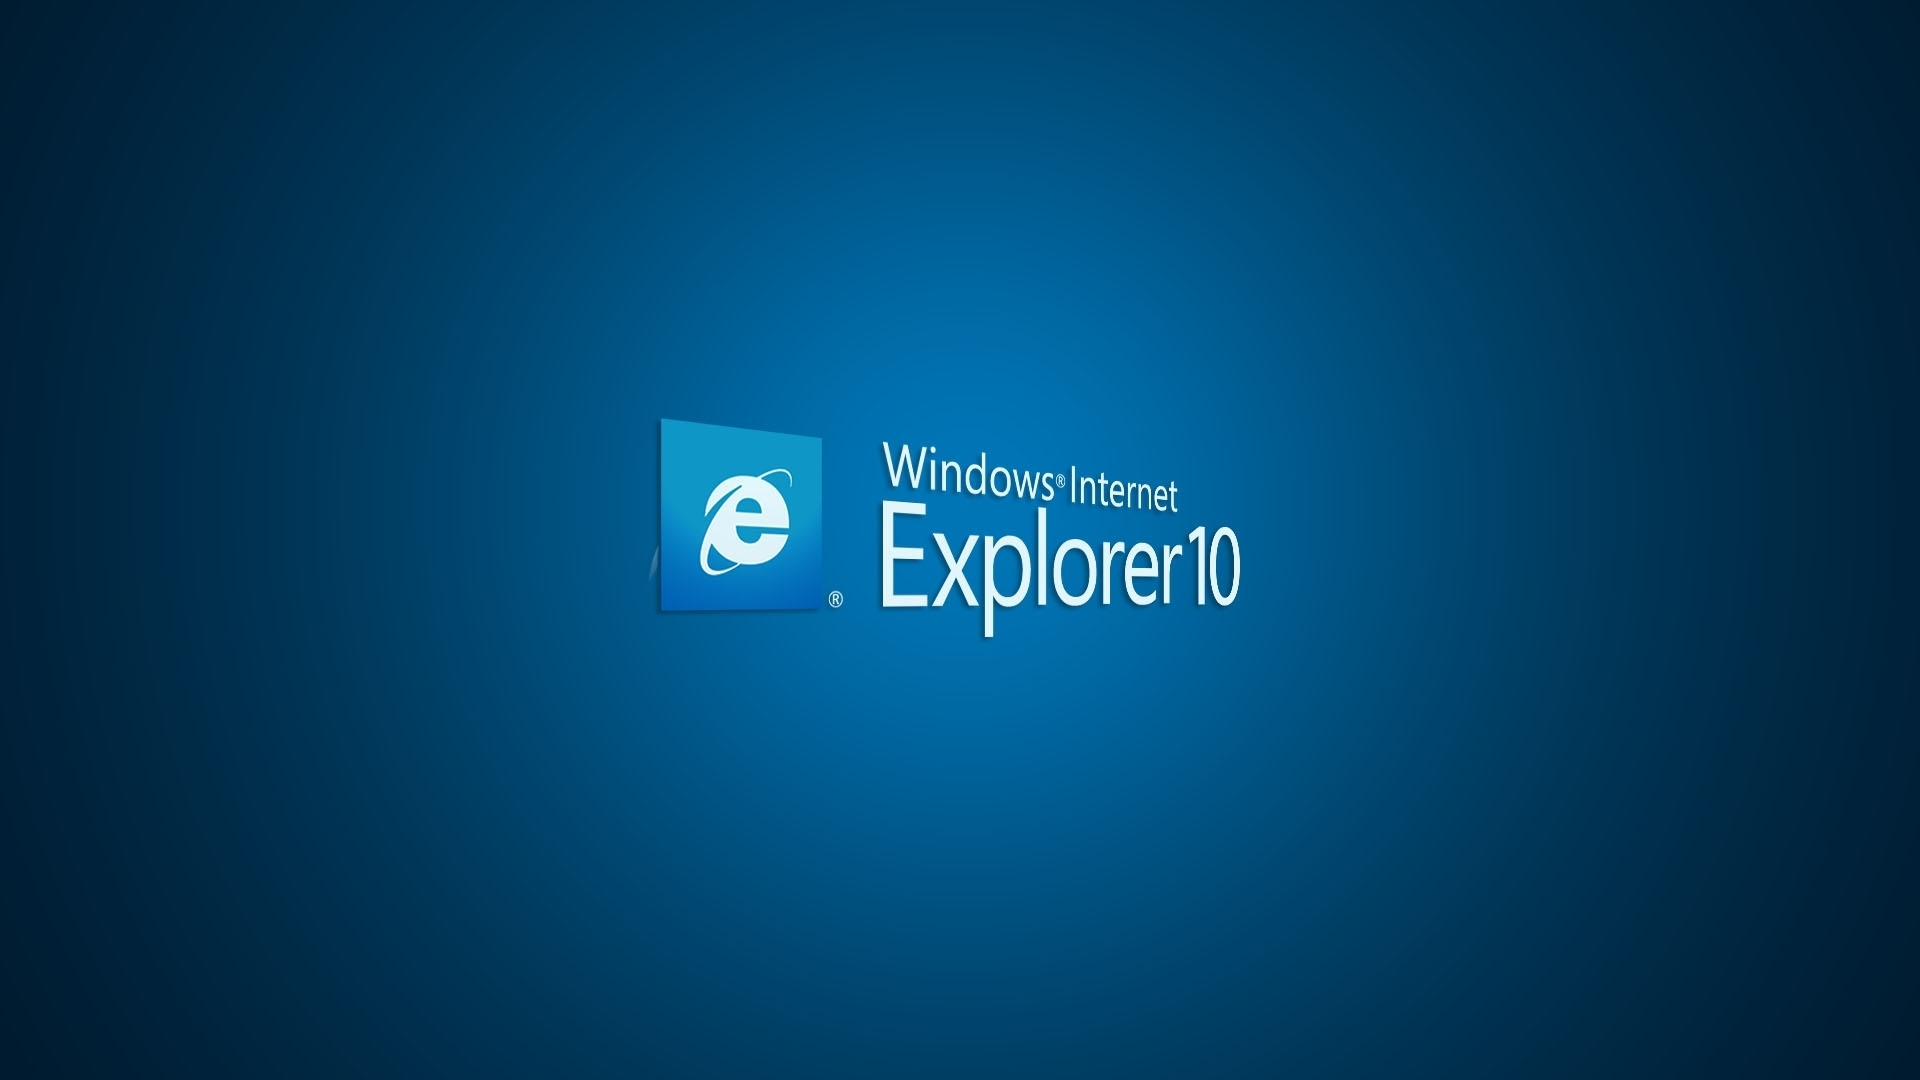 Microsoft windows internet explorer 10 high definition for Microsoft windows